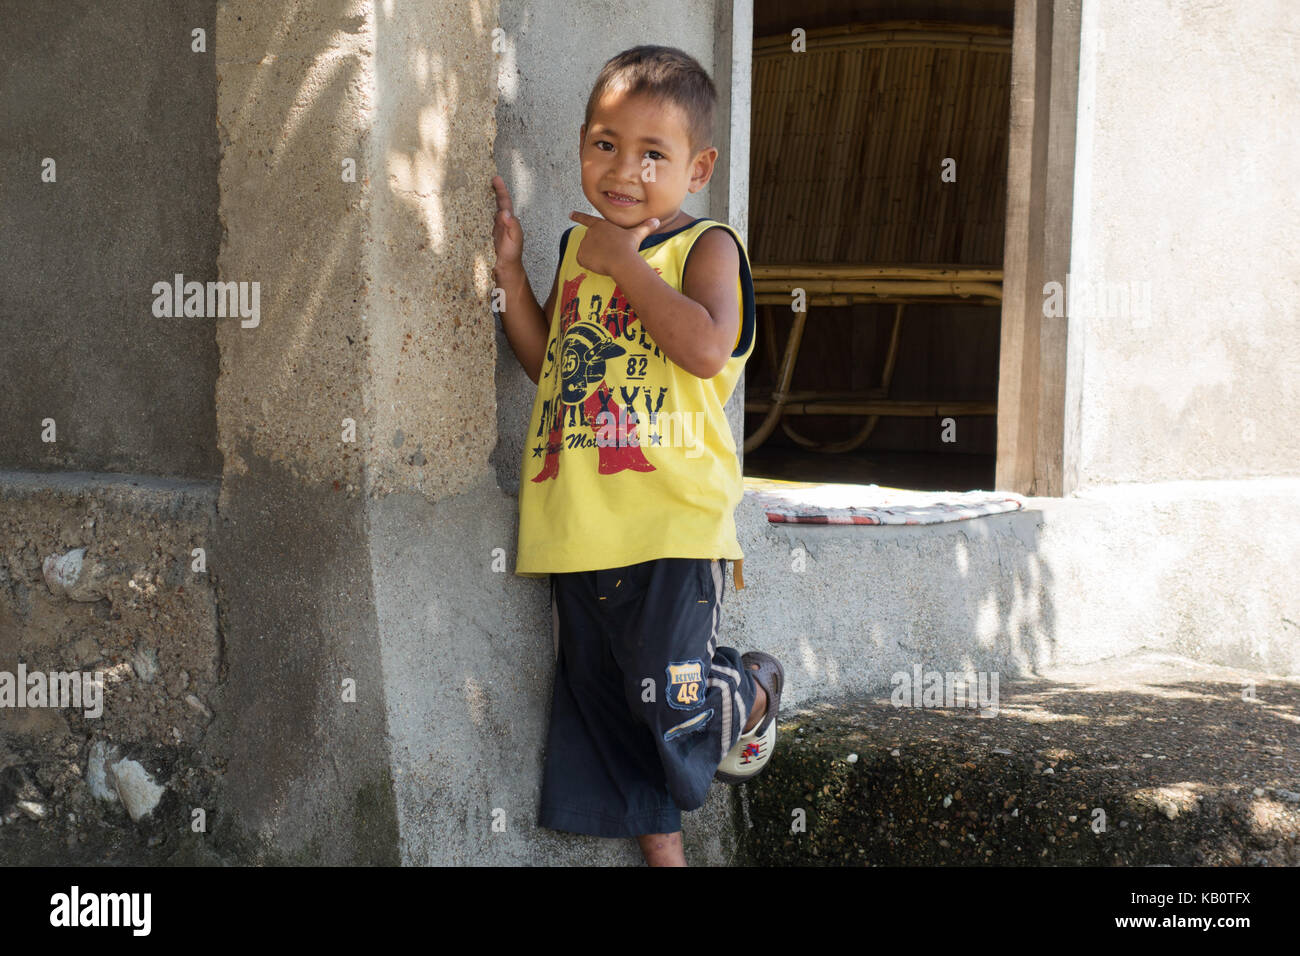 Philippines children - a young Filipino boy aged 5 years, El Nido, Palawan, Philippines, Asia - Stock Image